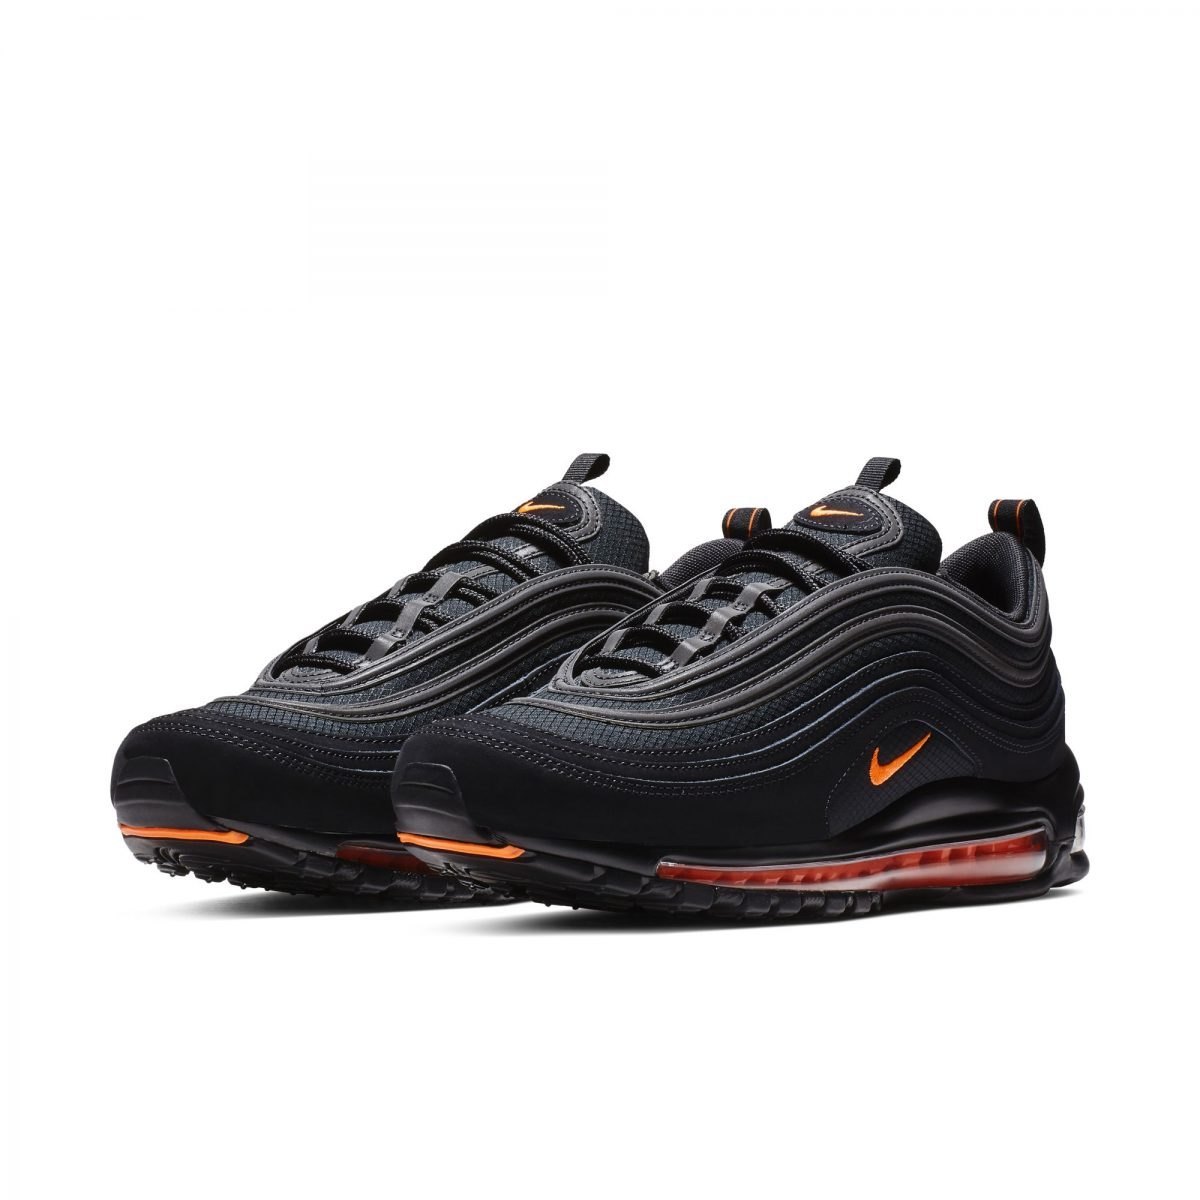 Orange and Black 97s are a Match Made in Heaven HOUSE OF